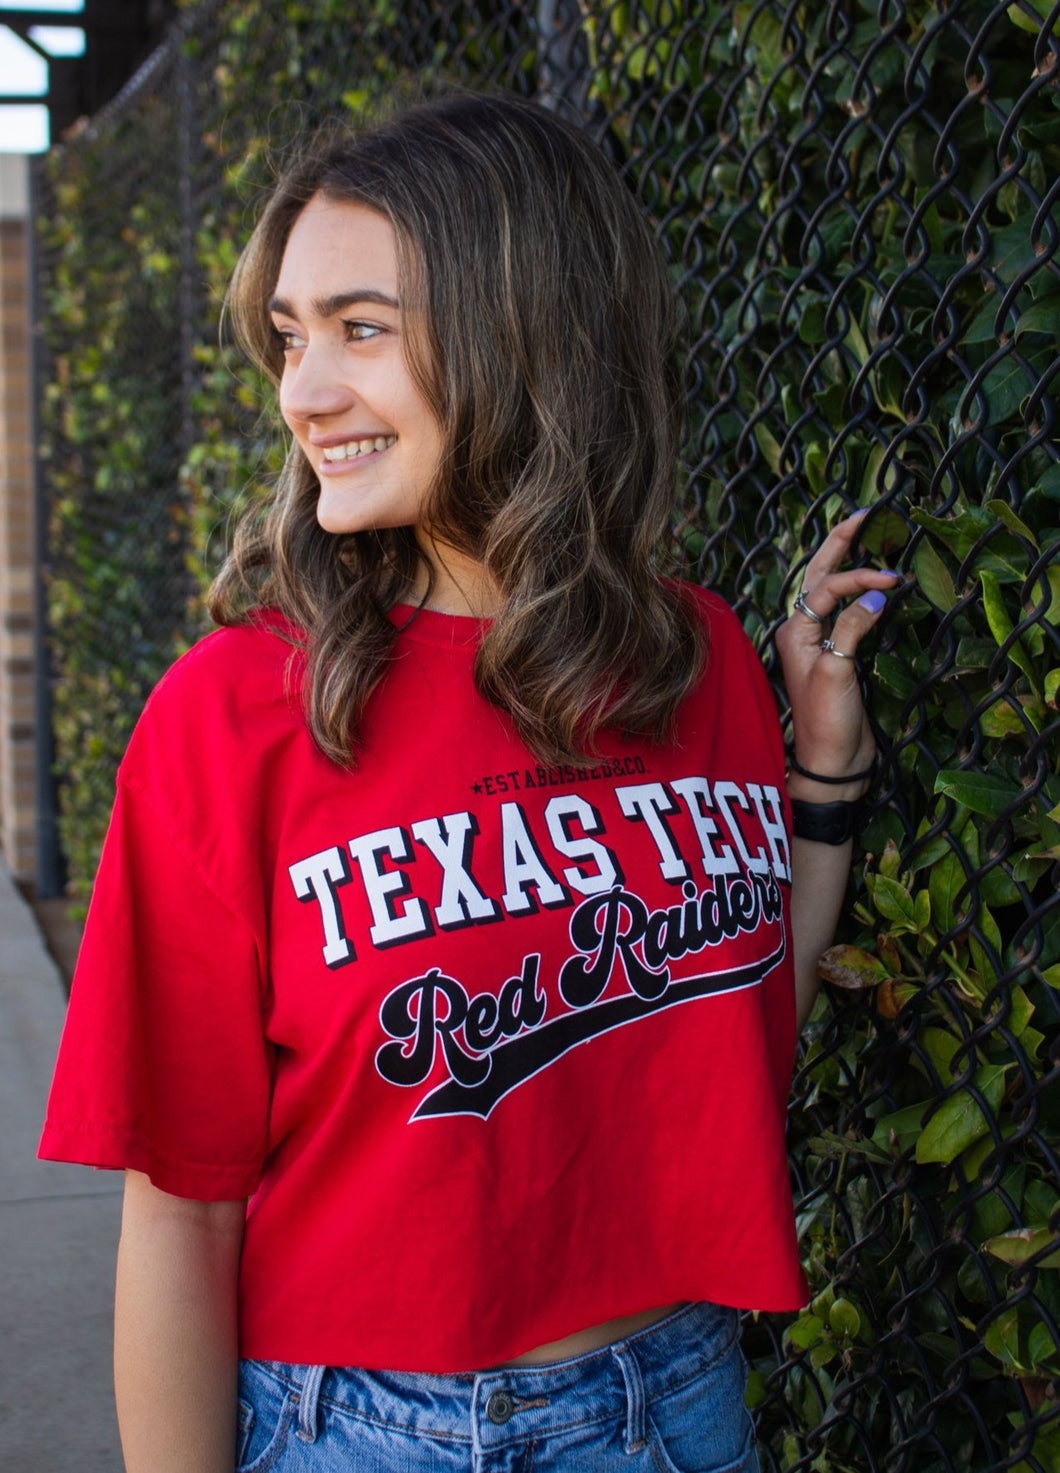 Texas Tech crop tee